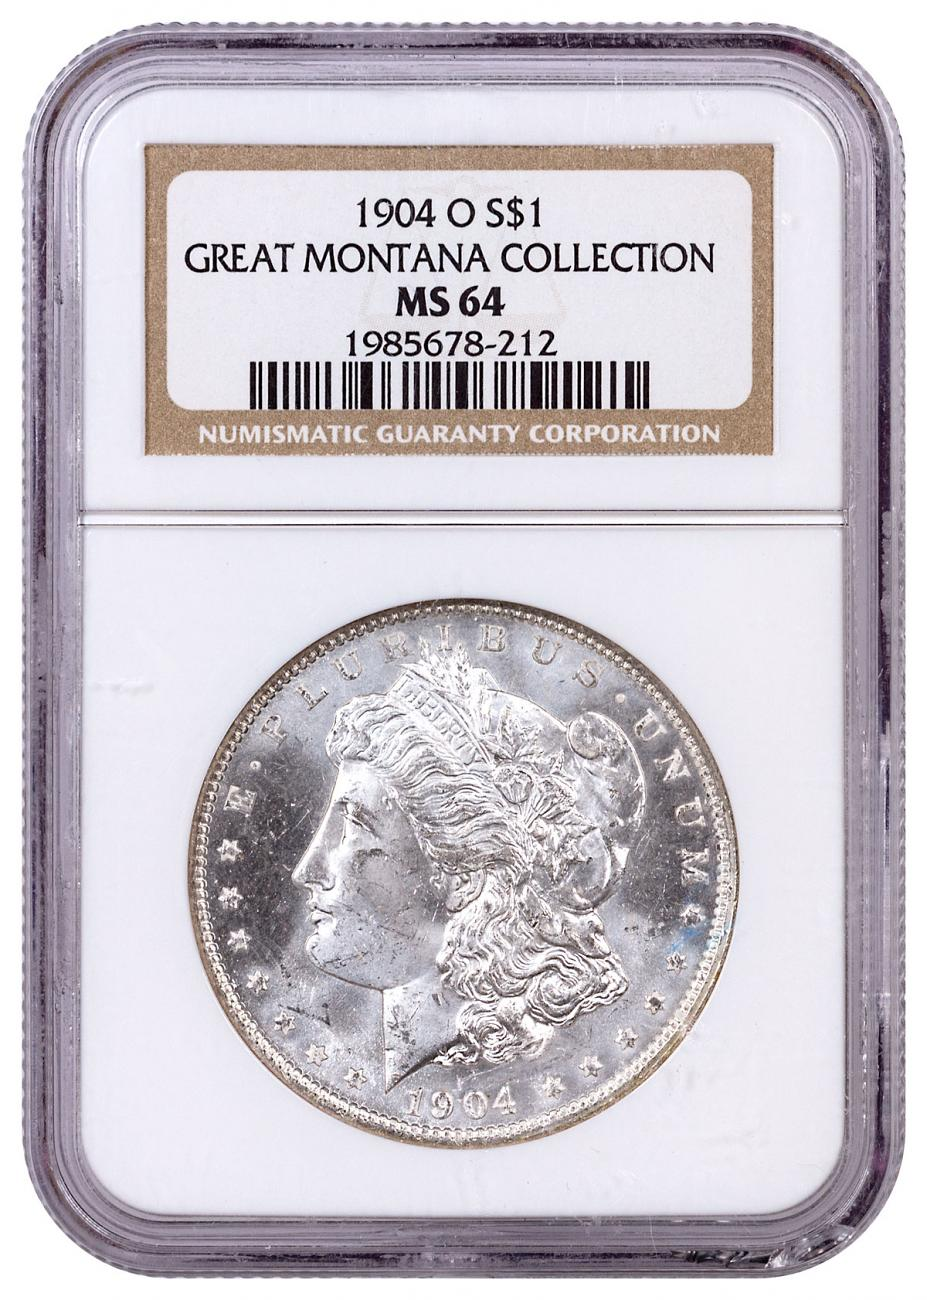 1904-O Morgan Silver Dollar From the Great Montana Collection NGC MS64 Toned CPCR 212